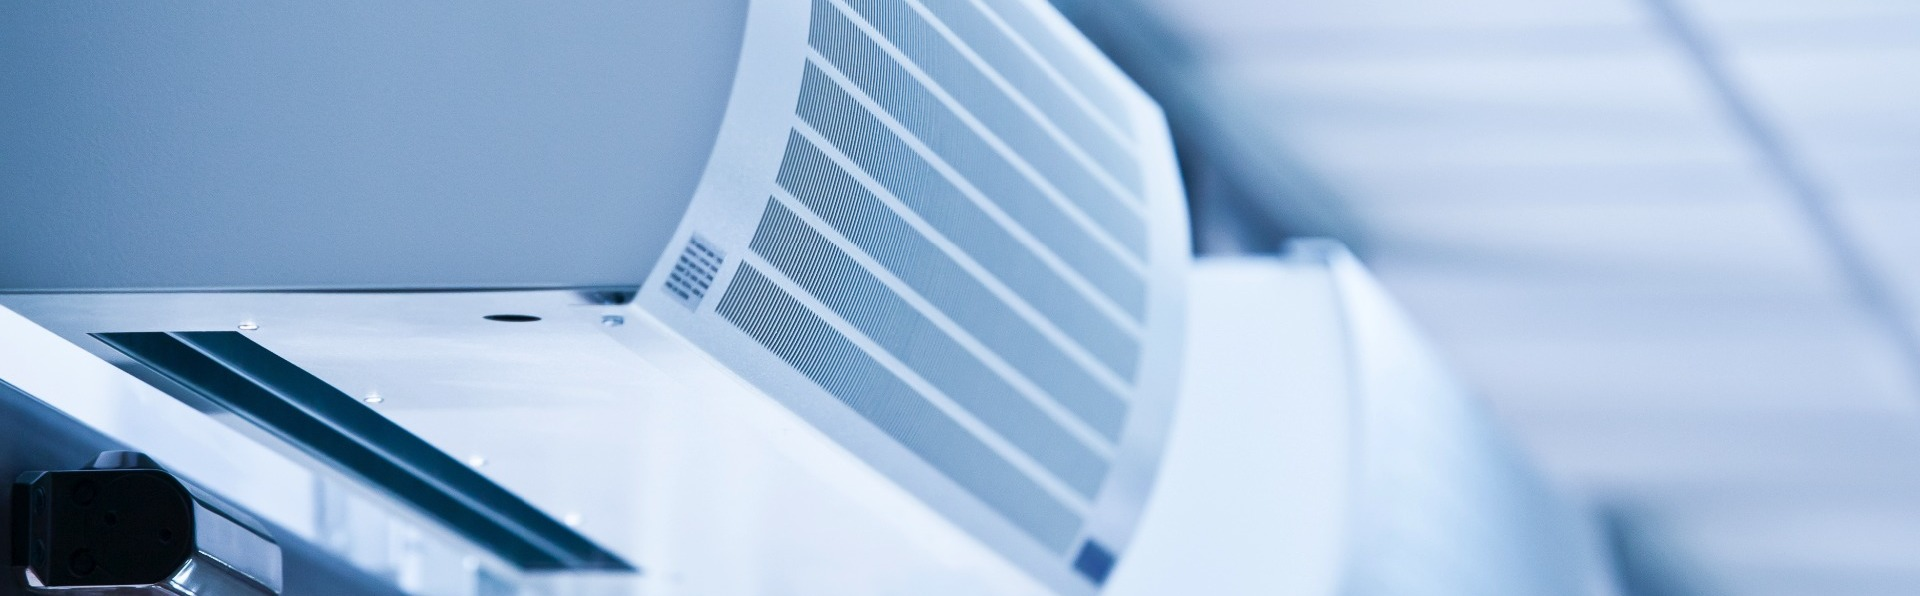 Commercial & Home Air conditioning installers and maintenance contractors based in Hinckley, Leicestershire, with nationwide services